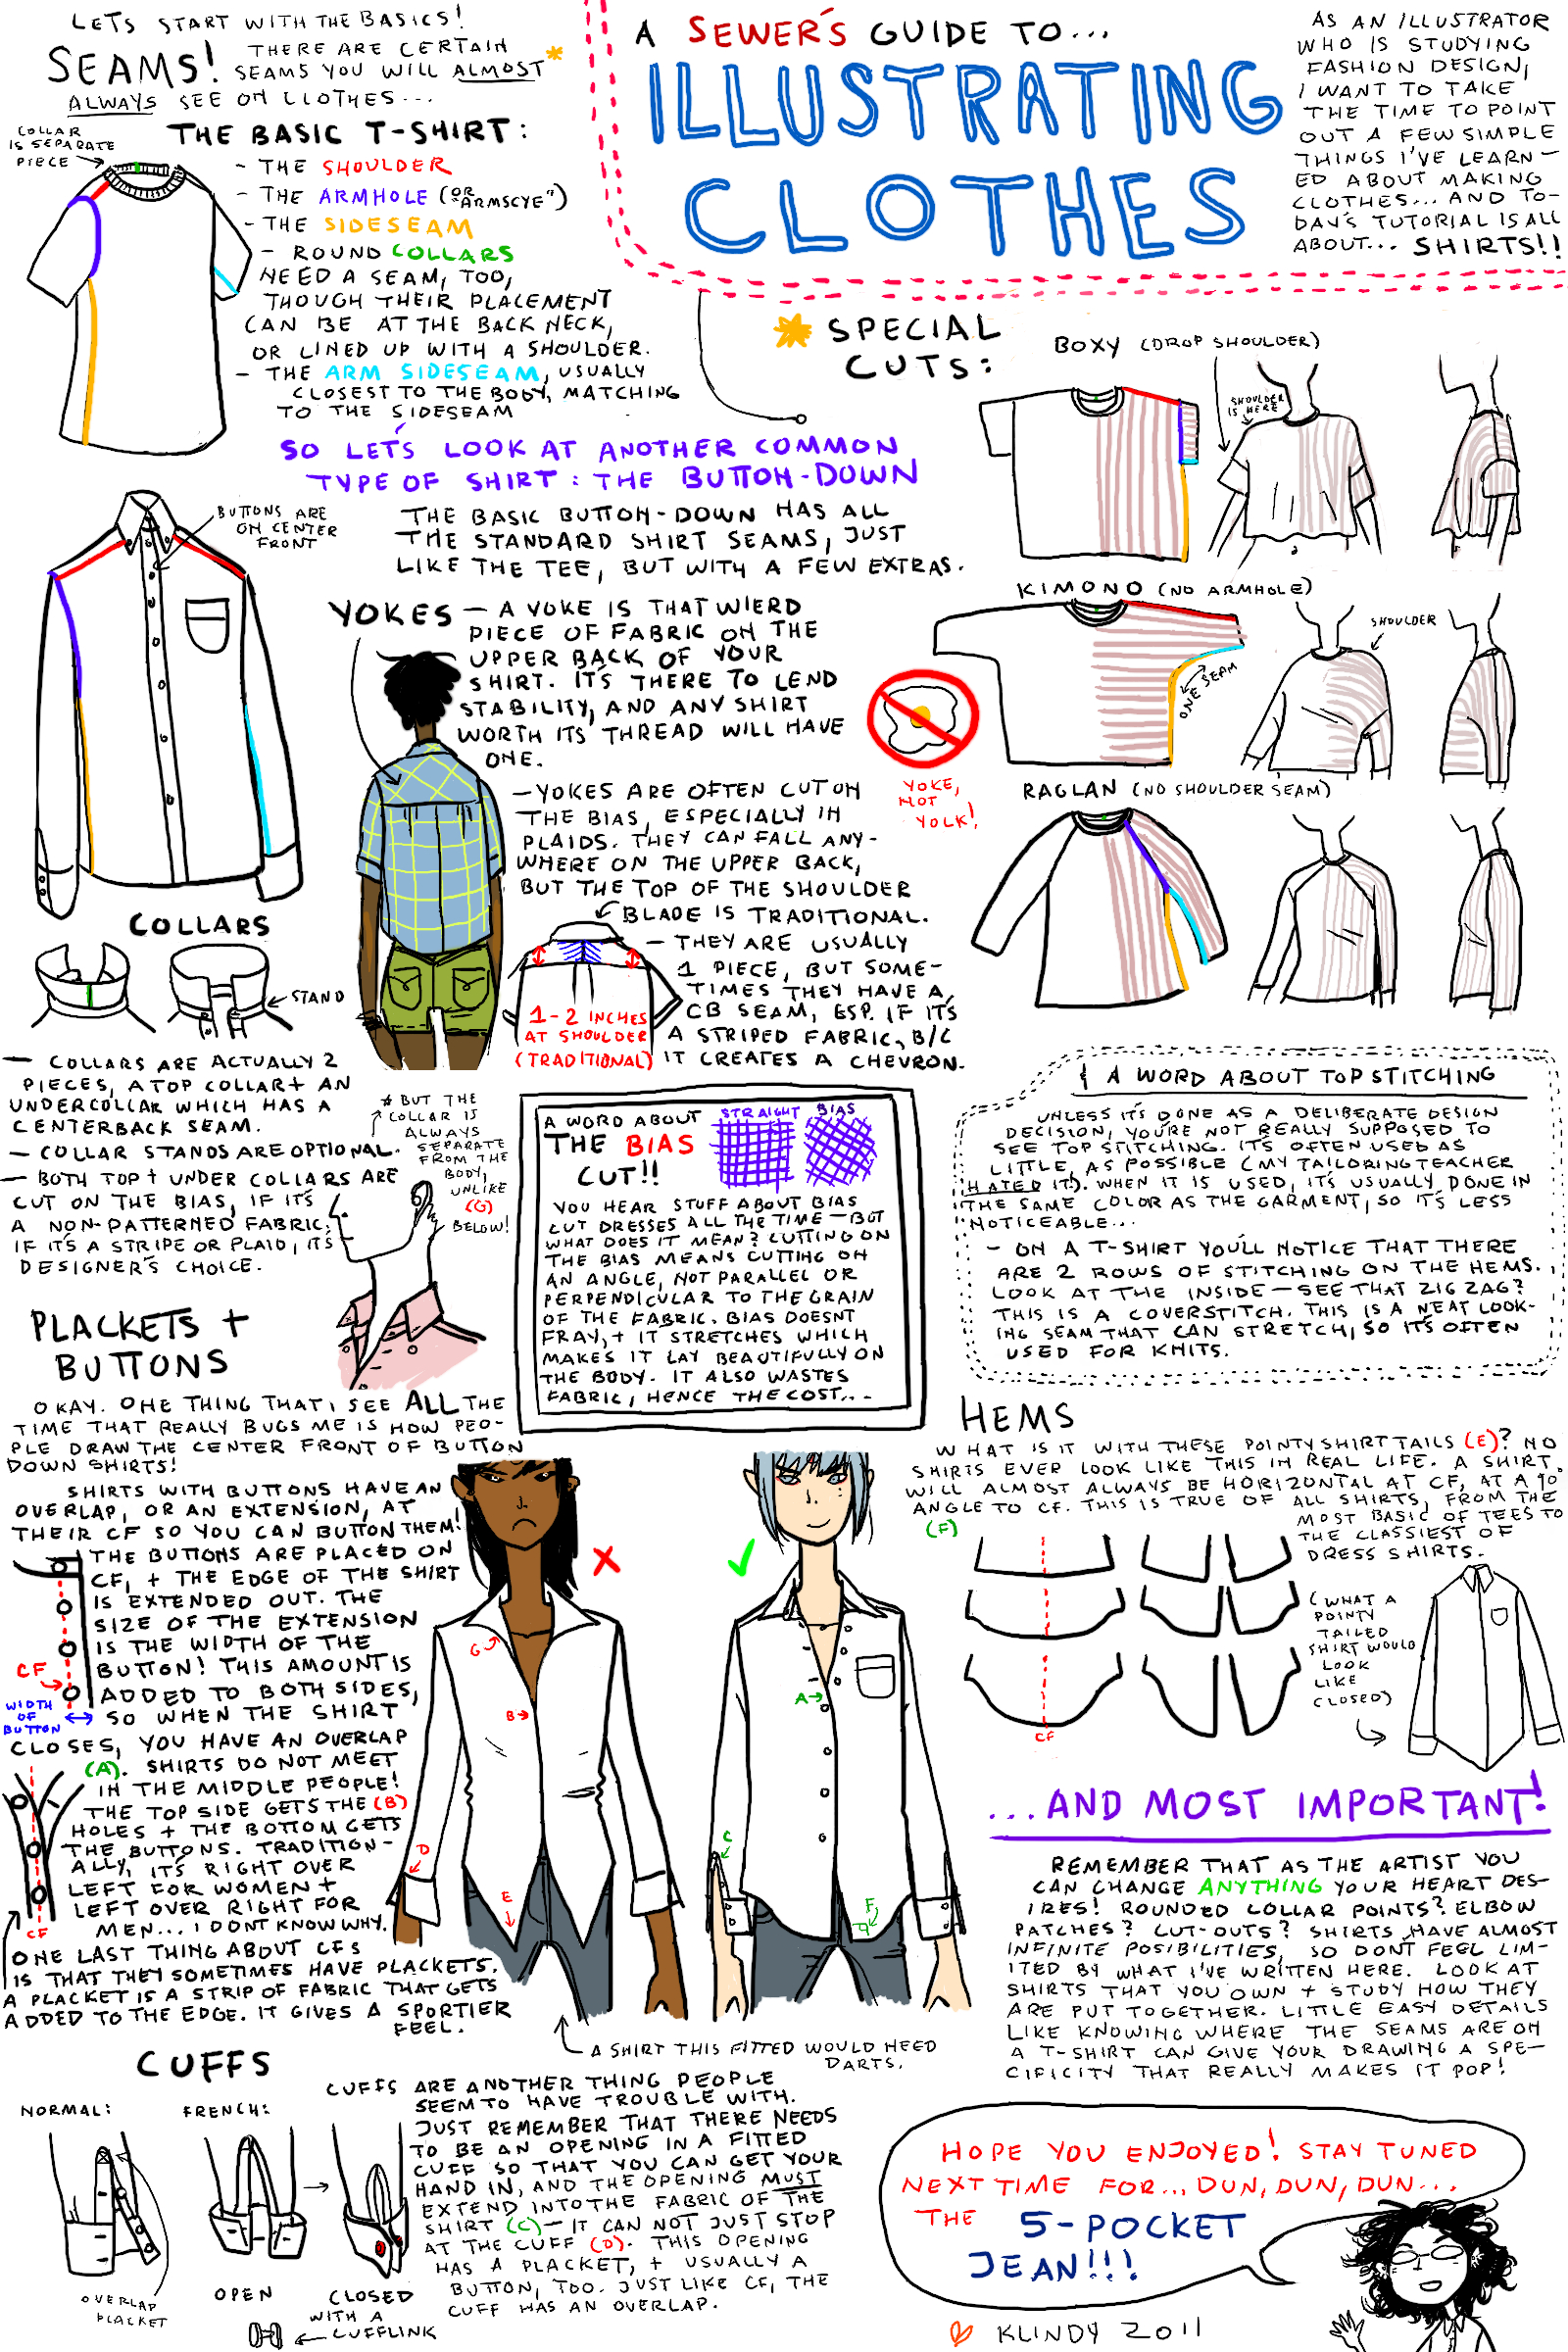 Clothing Refence Fashion Magazinesreference On Clothes: Clothing Tutorials On Reference-Library